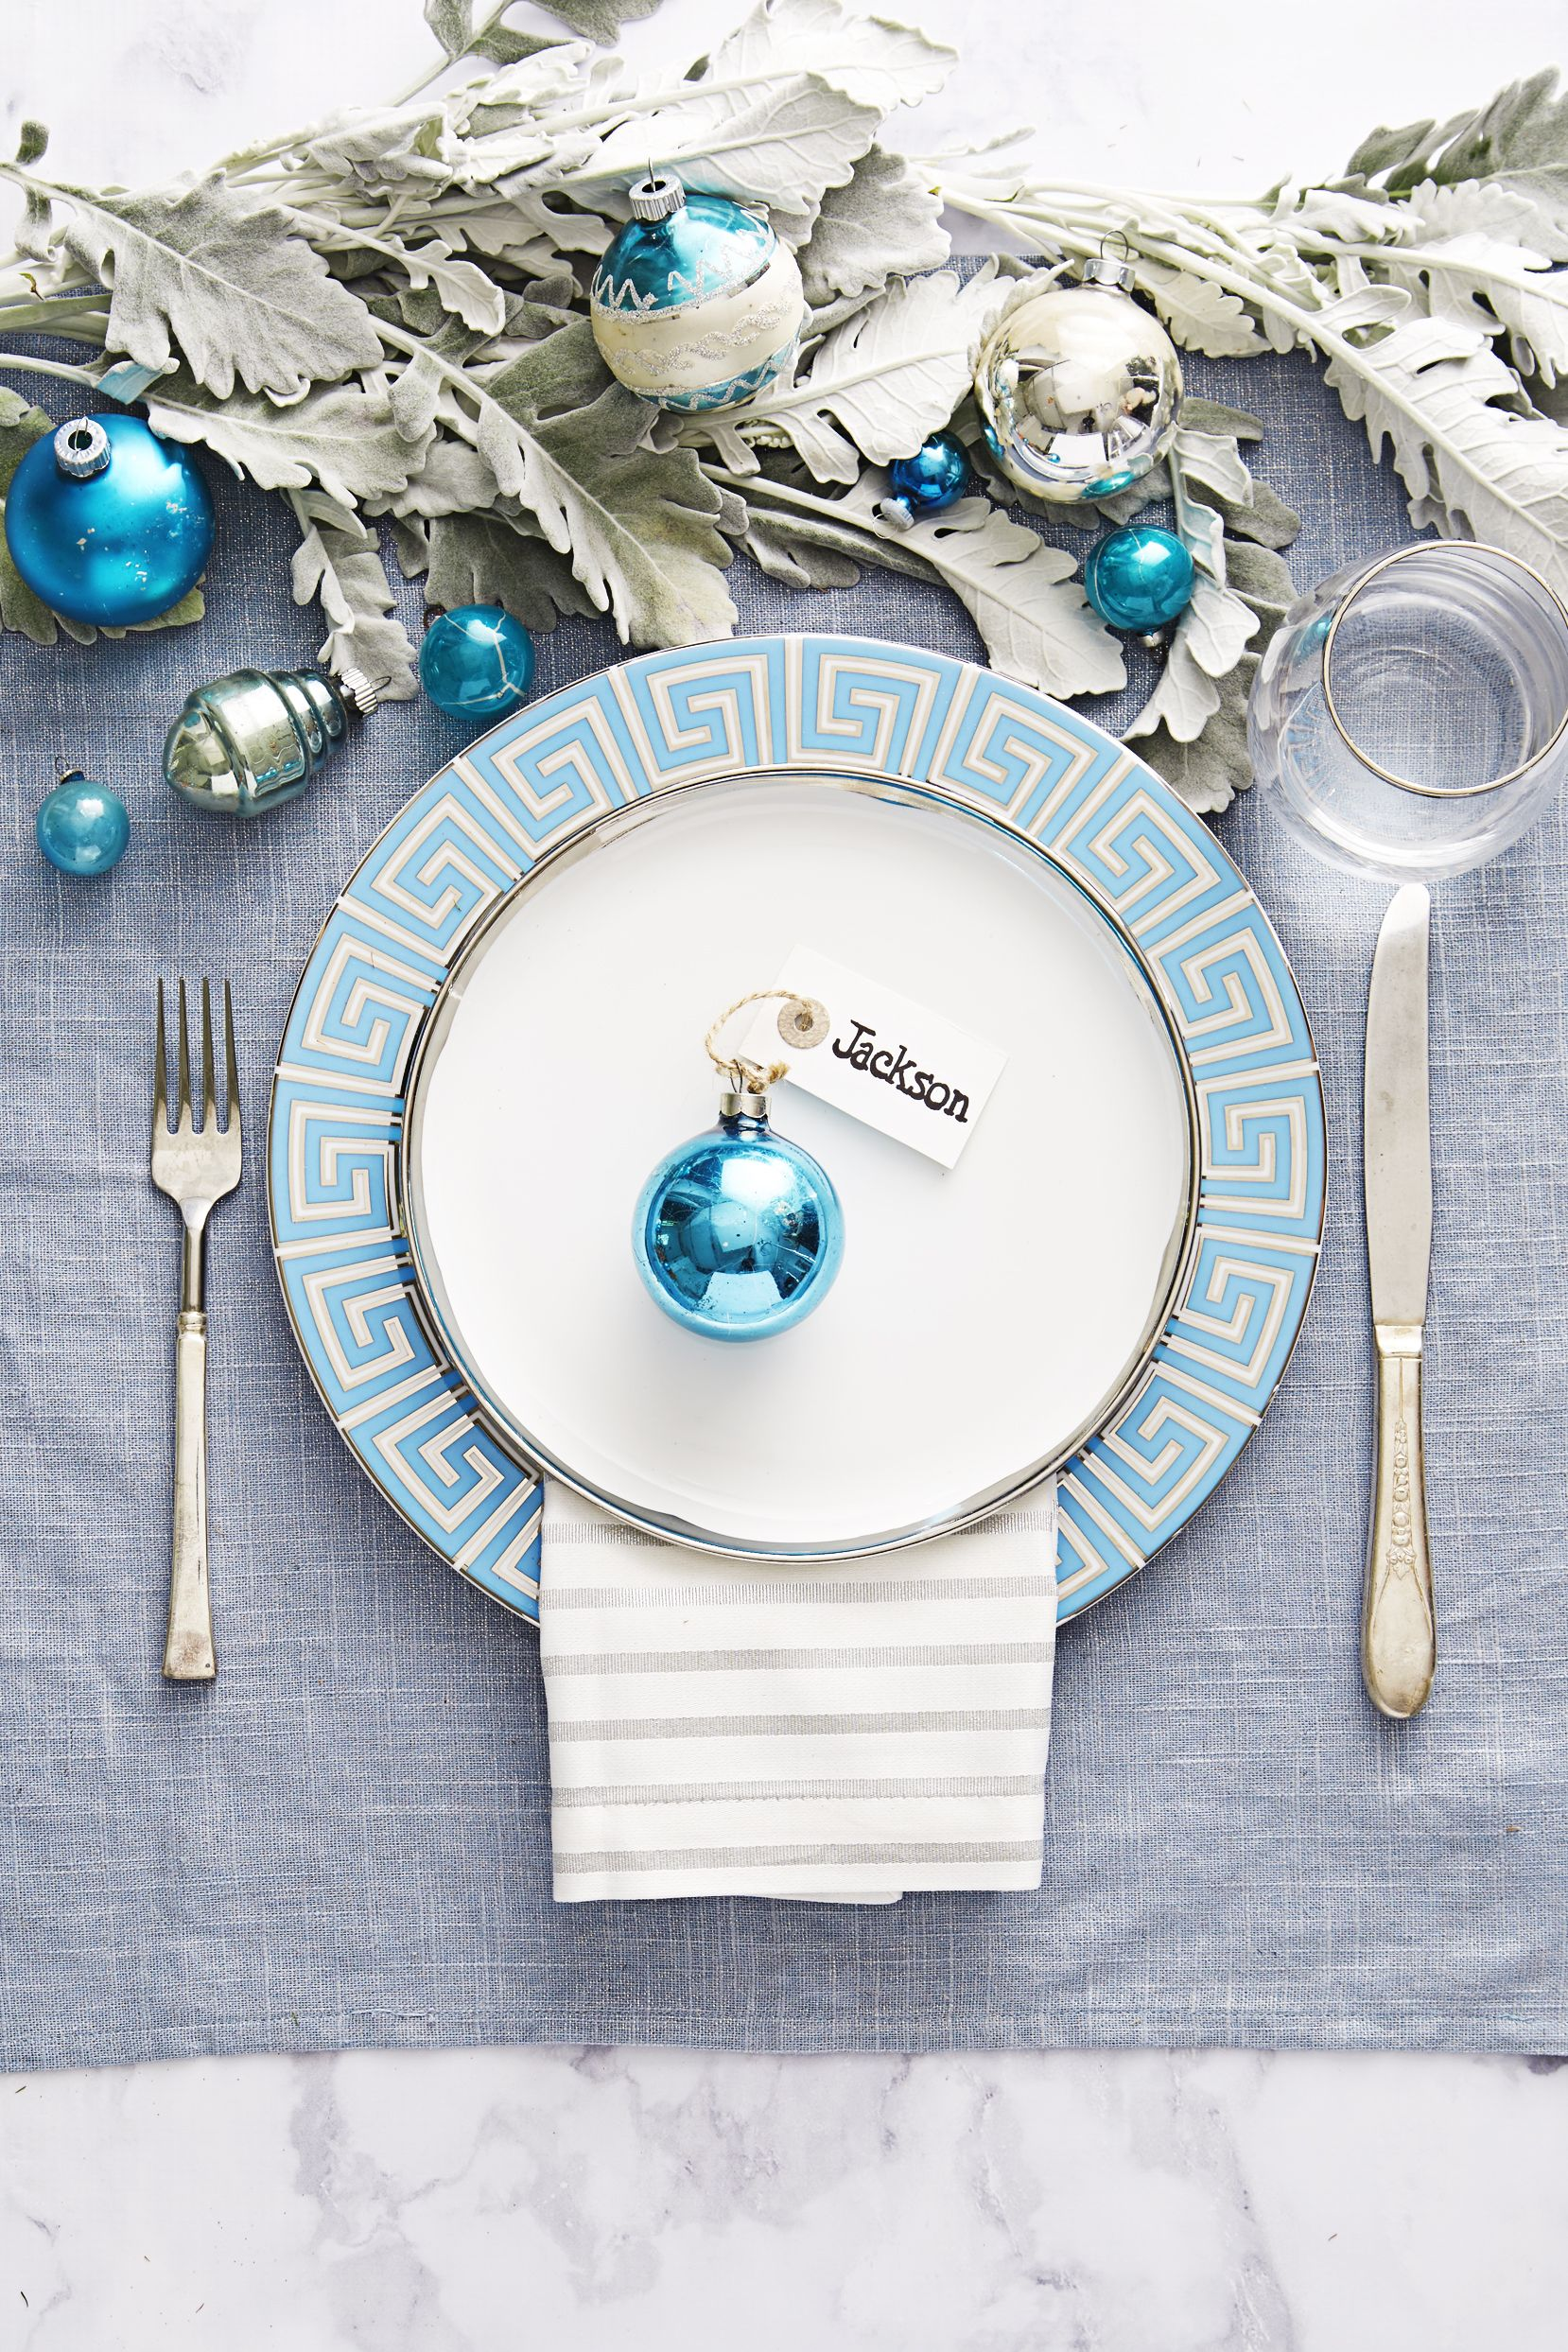 9 Christmas Tablescapes - Christmas Table Setting Ideas